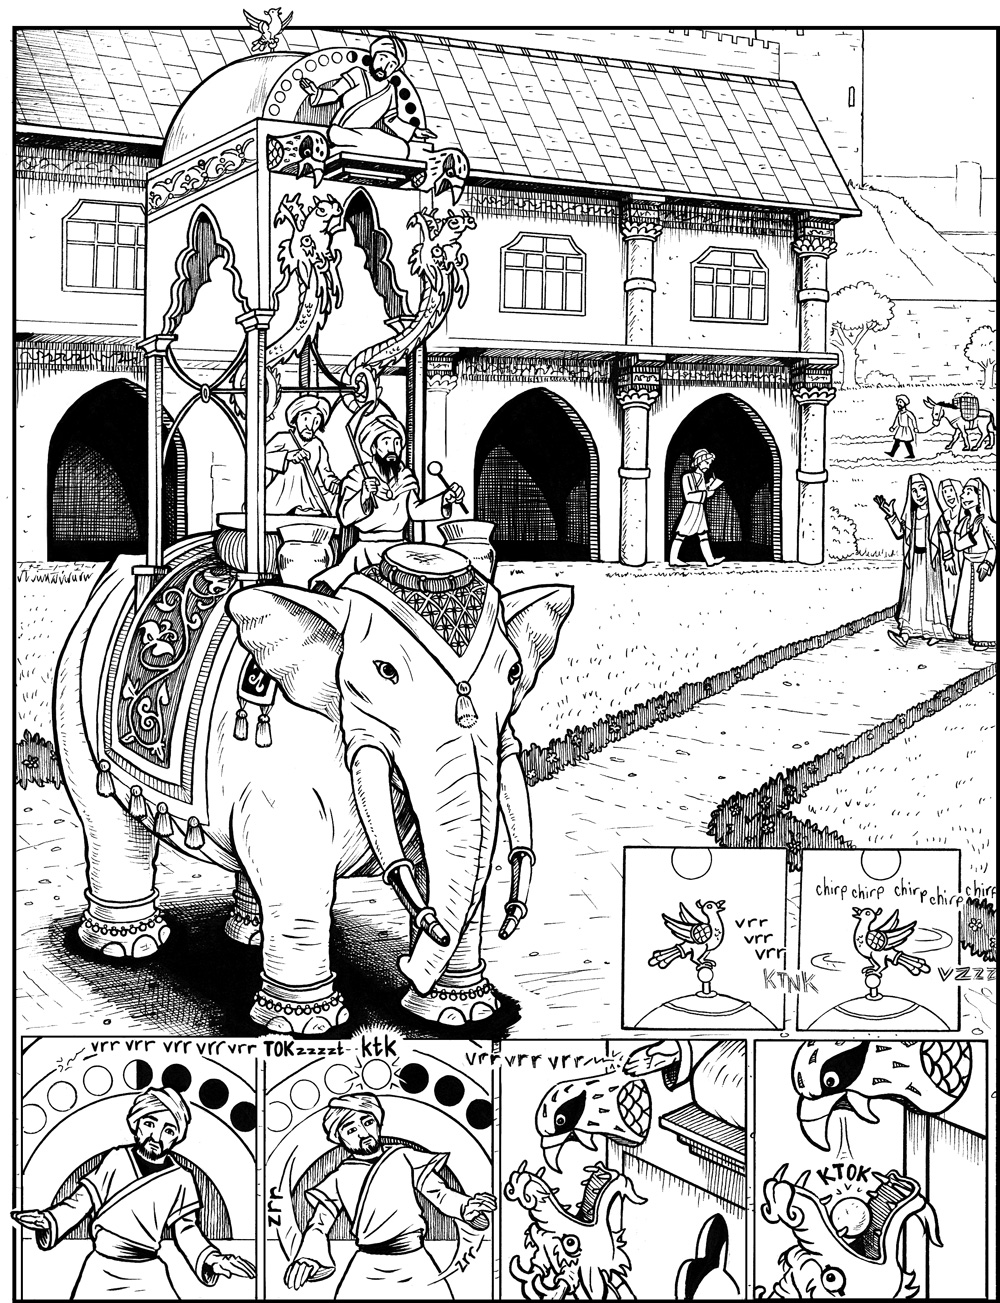 The Elephant Clock